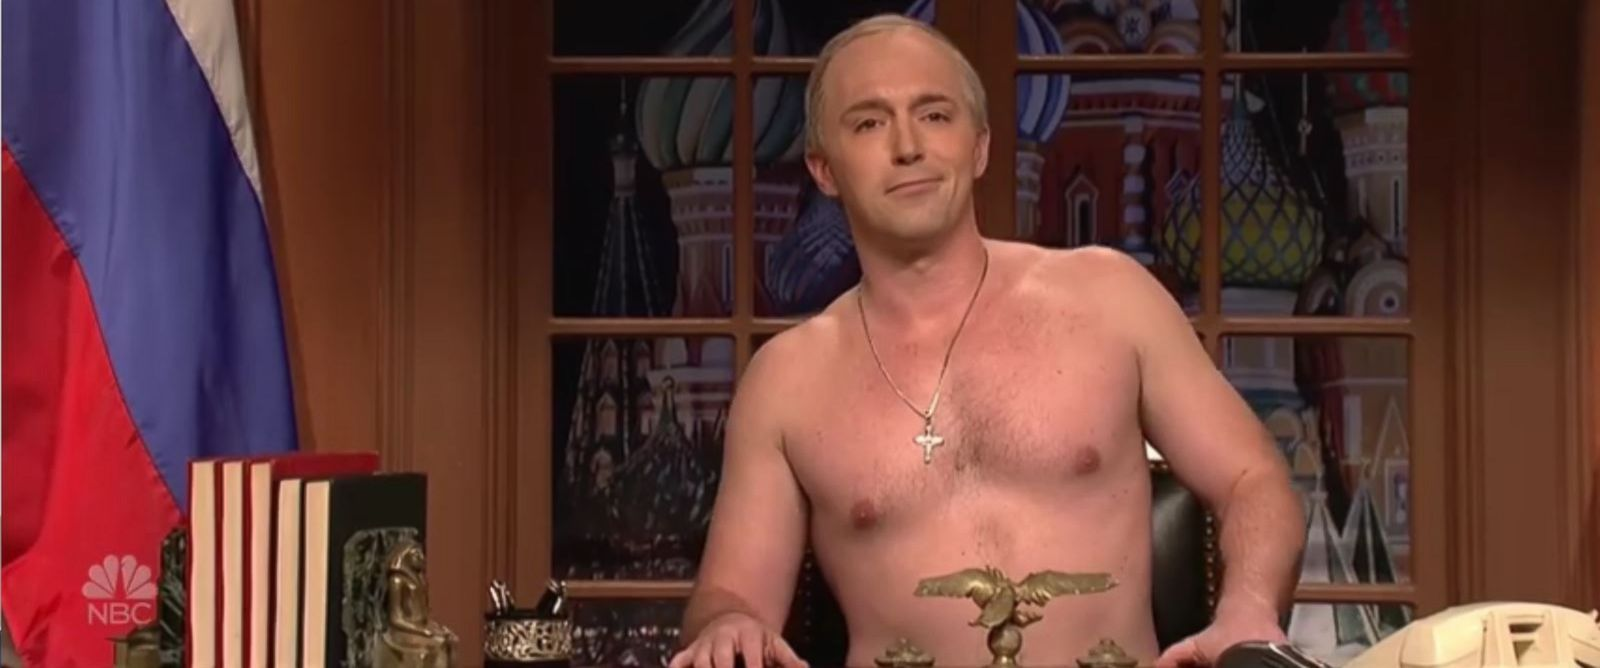 Image result for snl putin photo